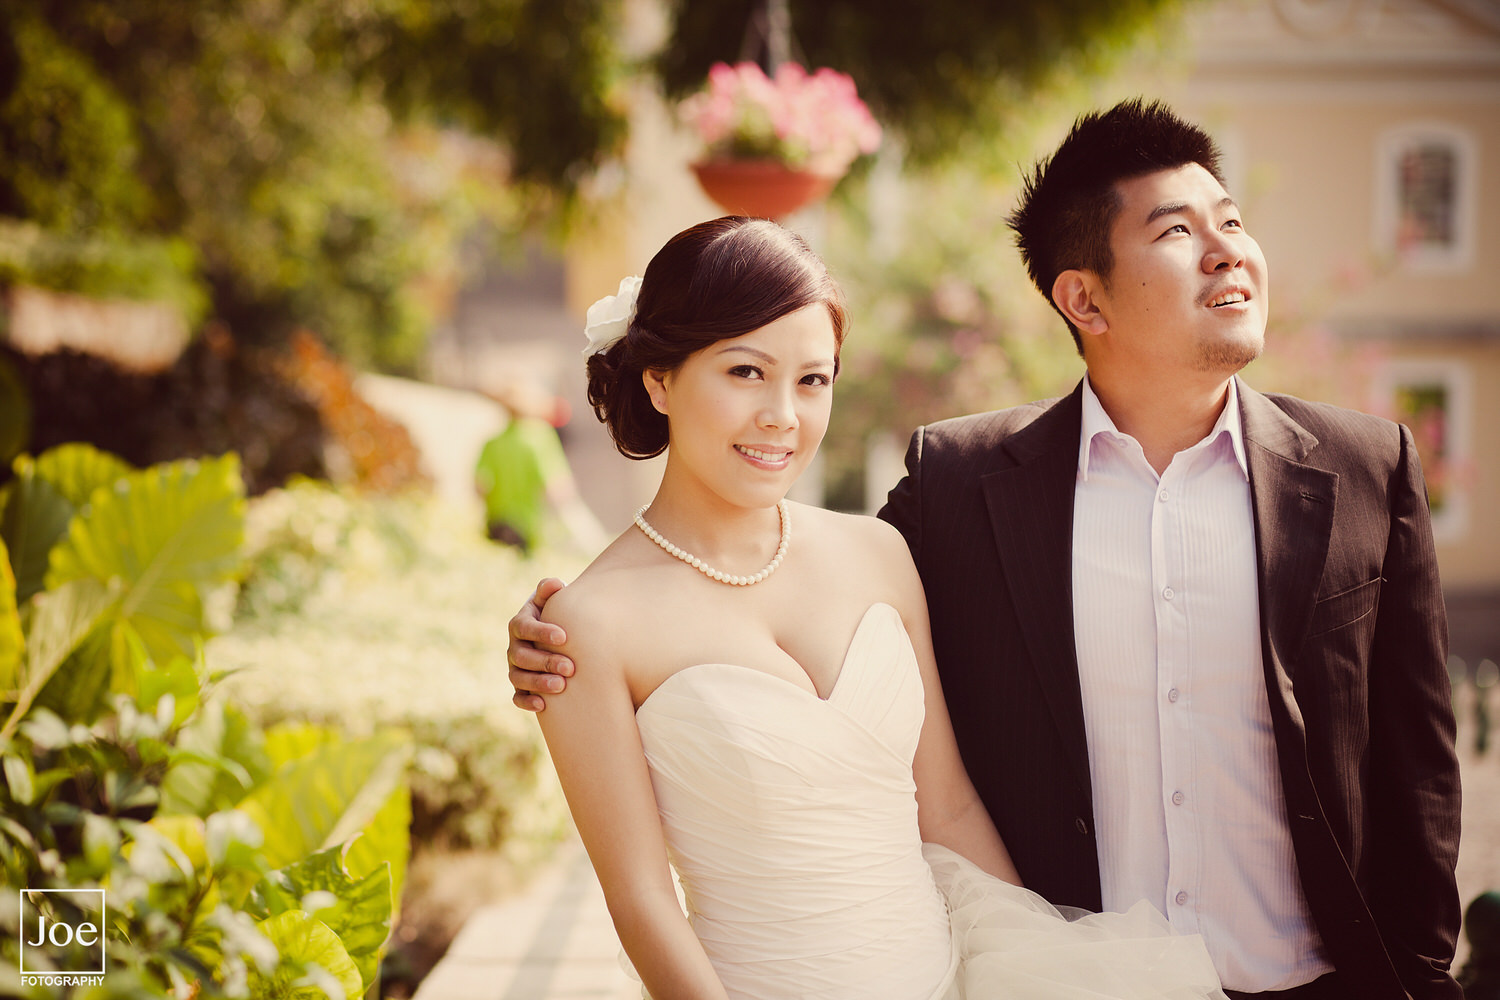 26-macau-pre-wedding-grace-denny-joe-fotography.jpg